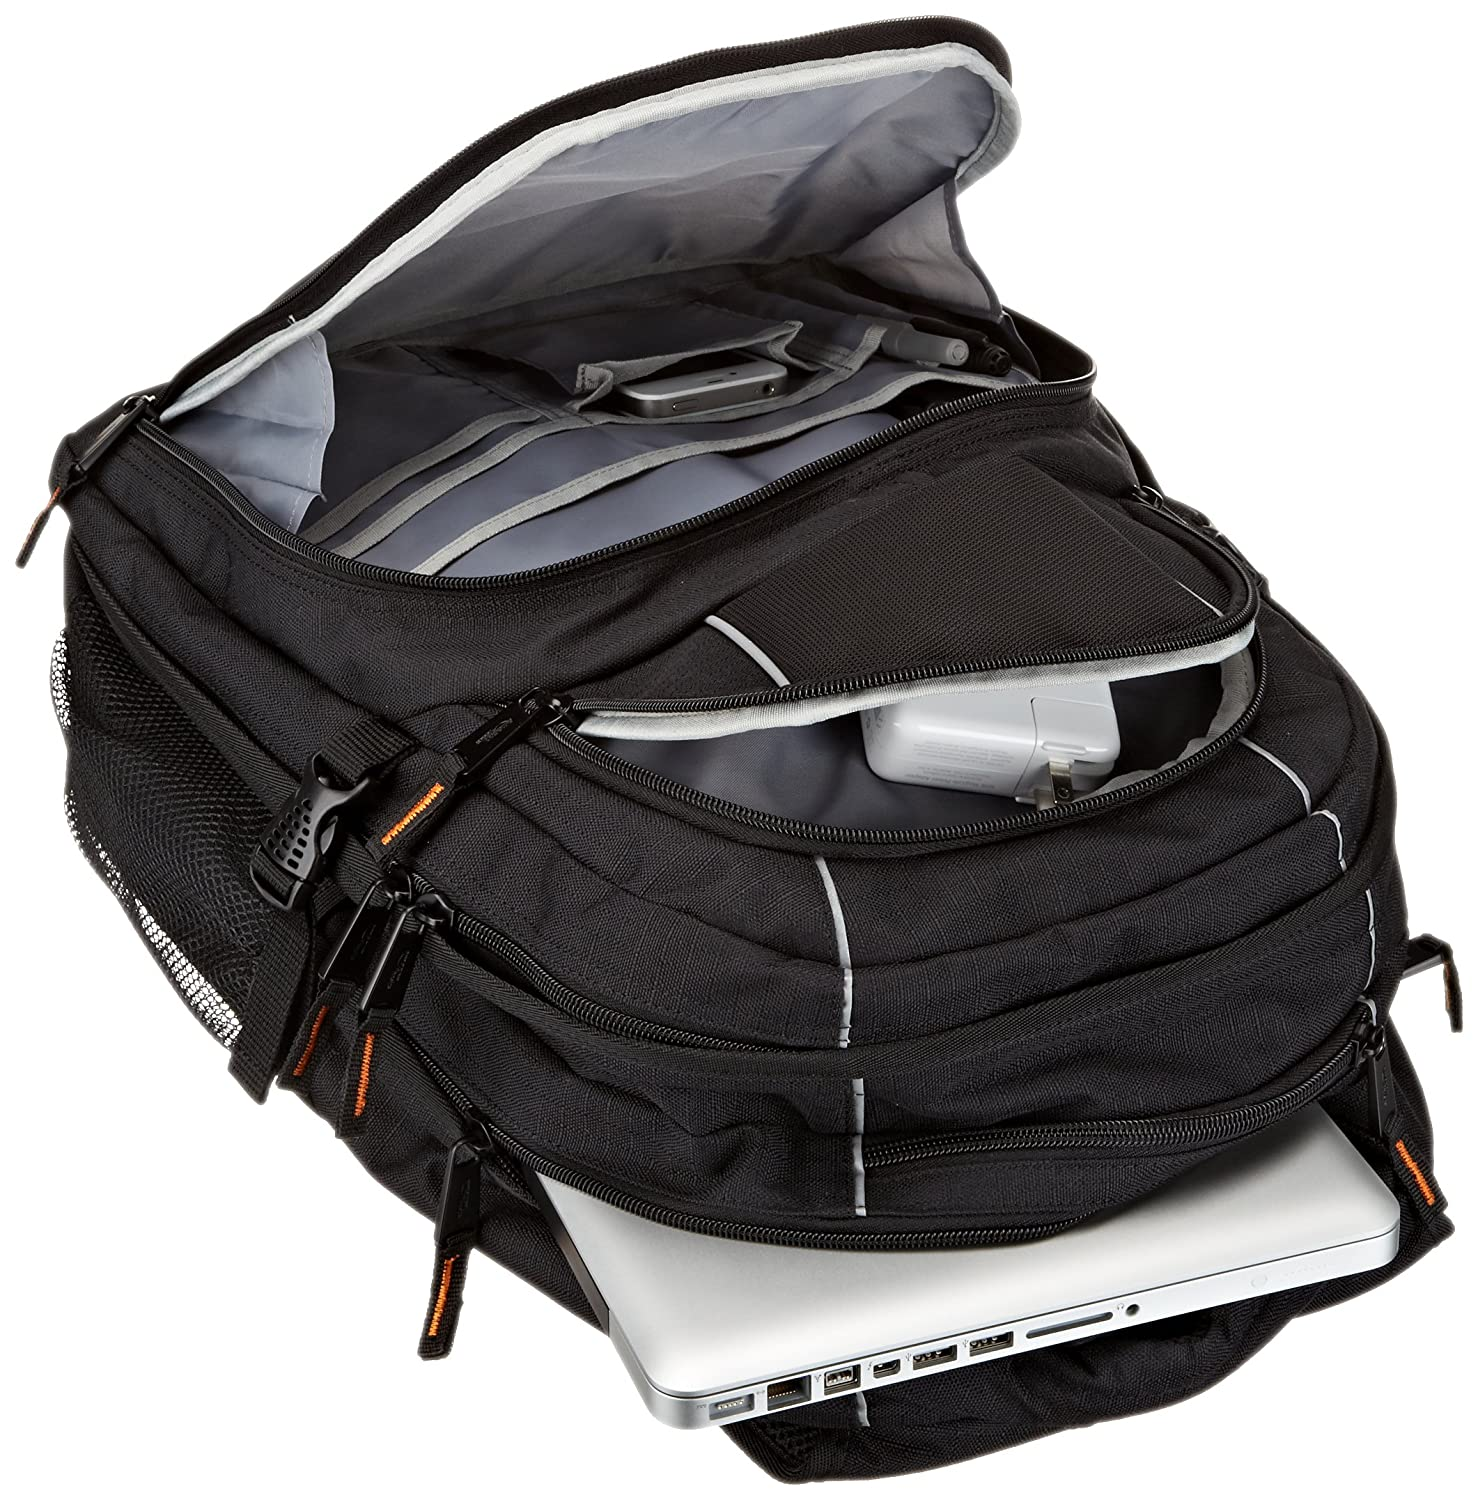 samsonite backpack review